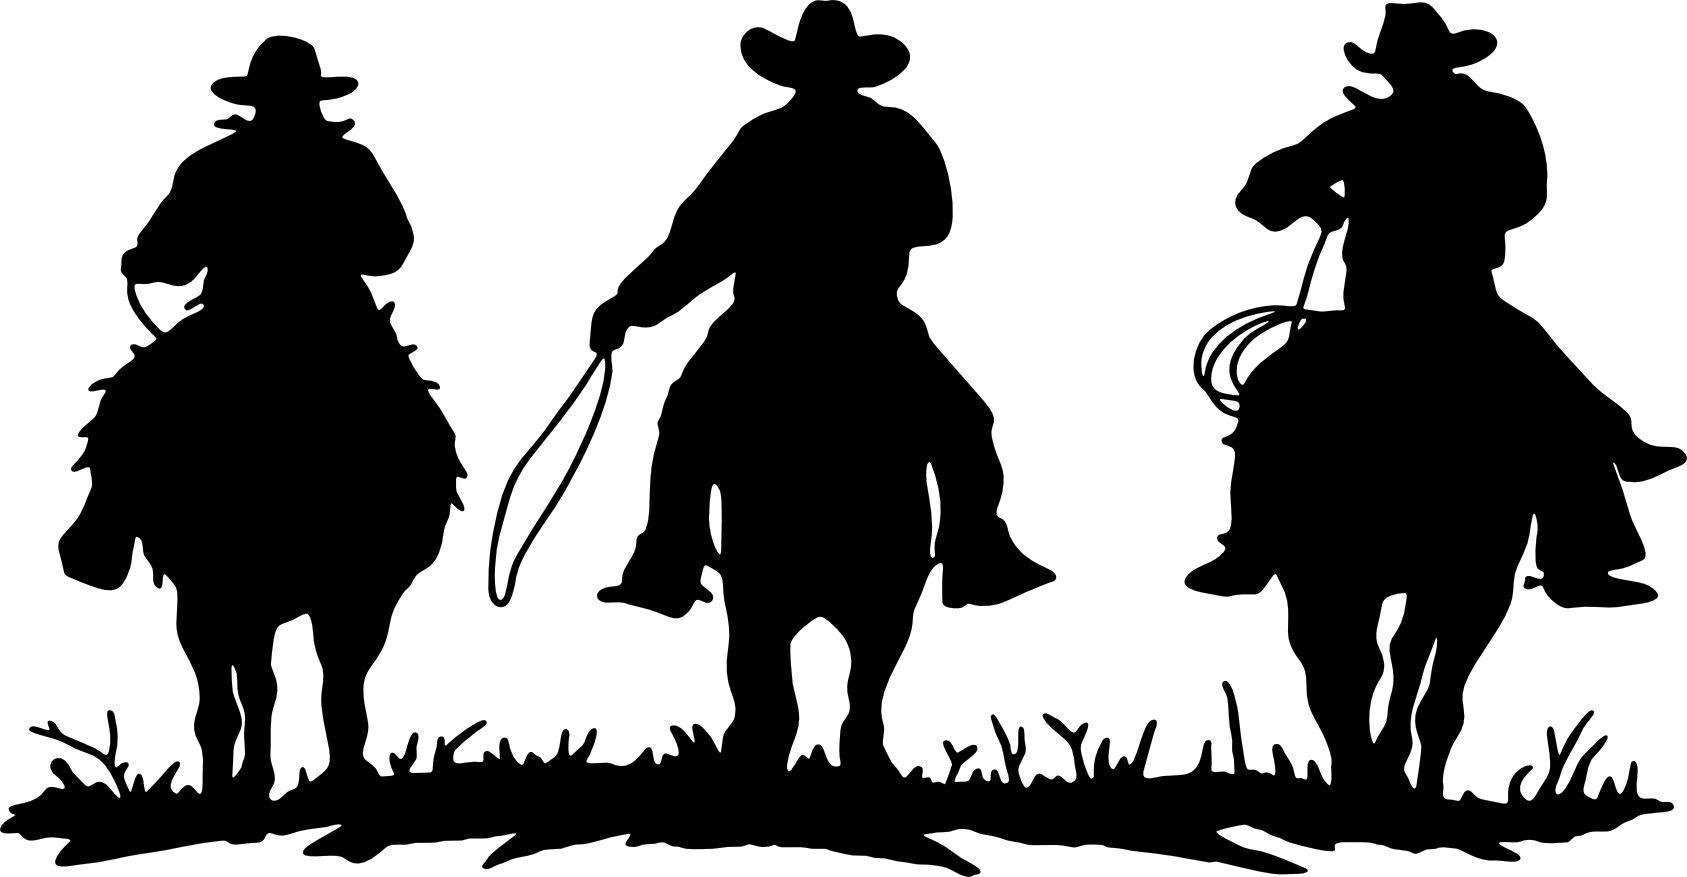 Western Horse Silhouette Images Pictures